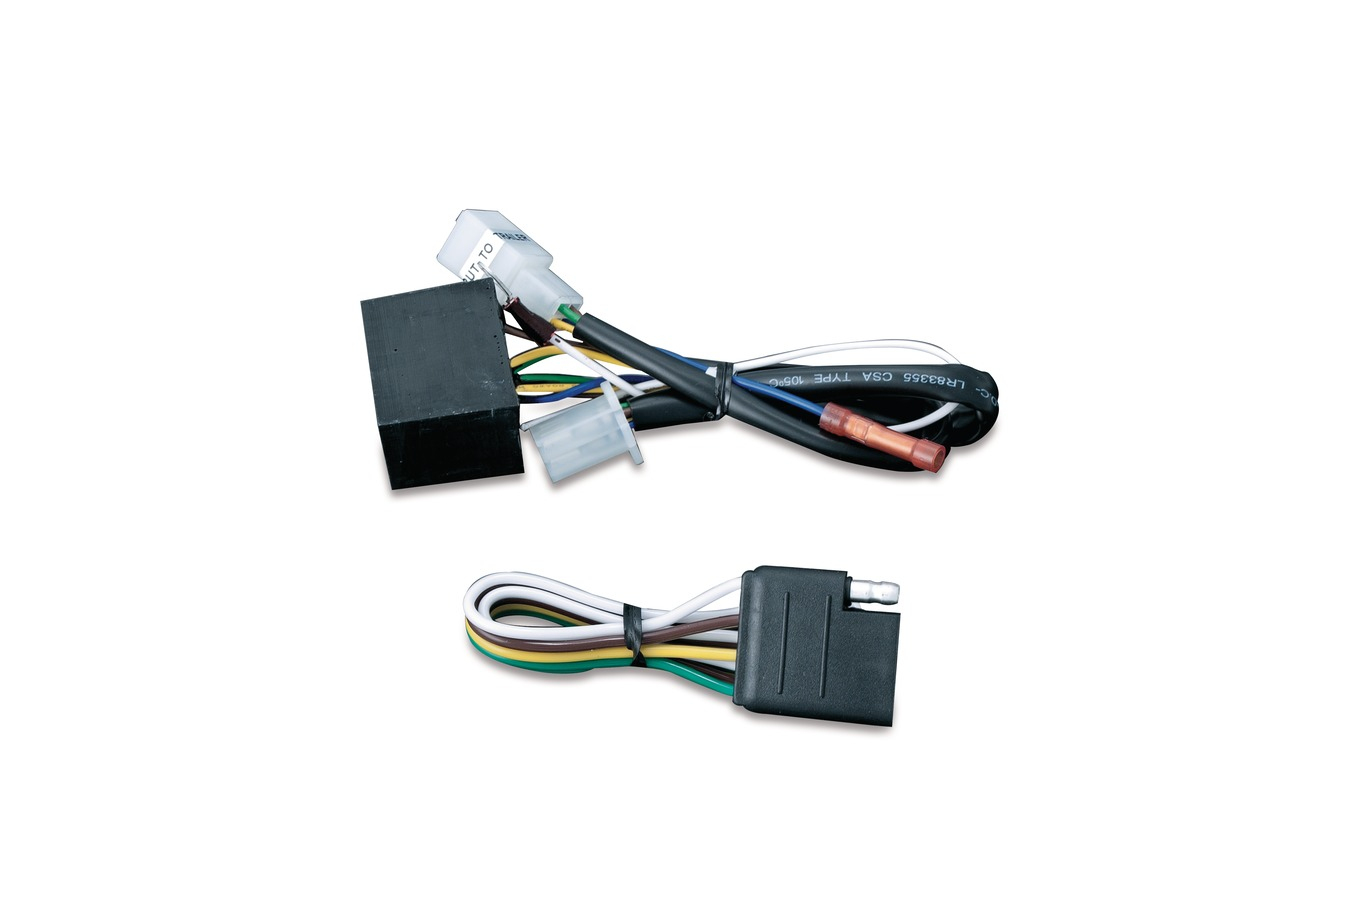 5 Wire Harness Trailer Wiring Harnesses Trailer Hitches Wiring - 5 Wire Boat Trailer Wiring Diagram